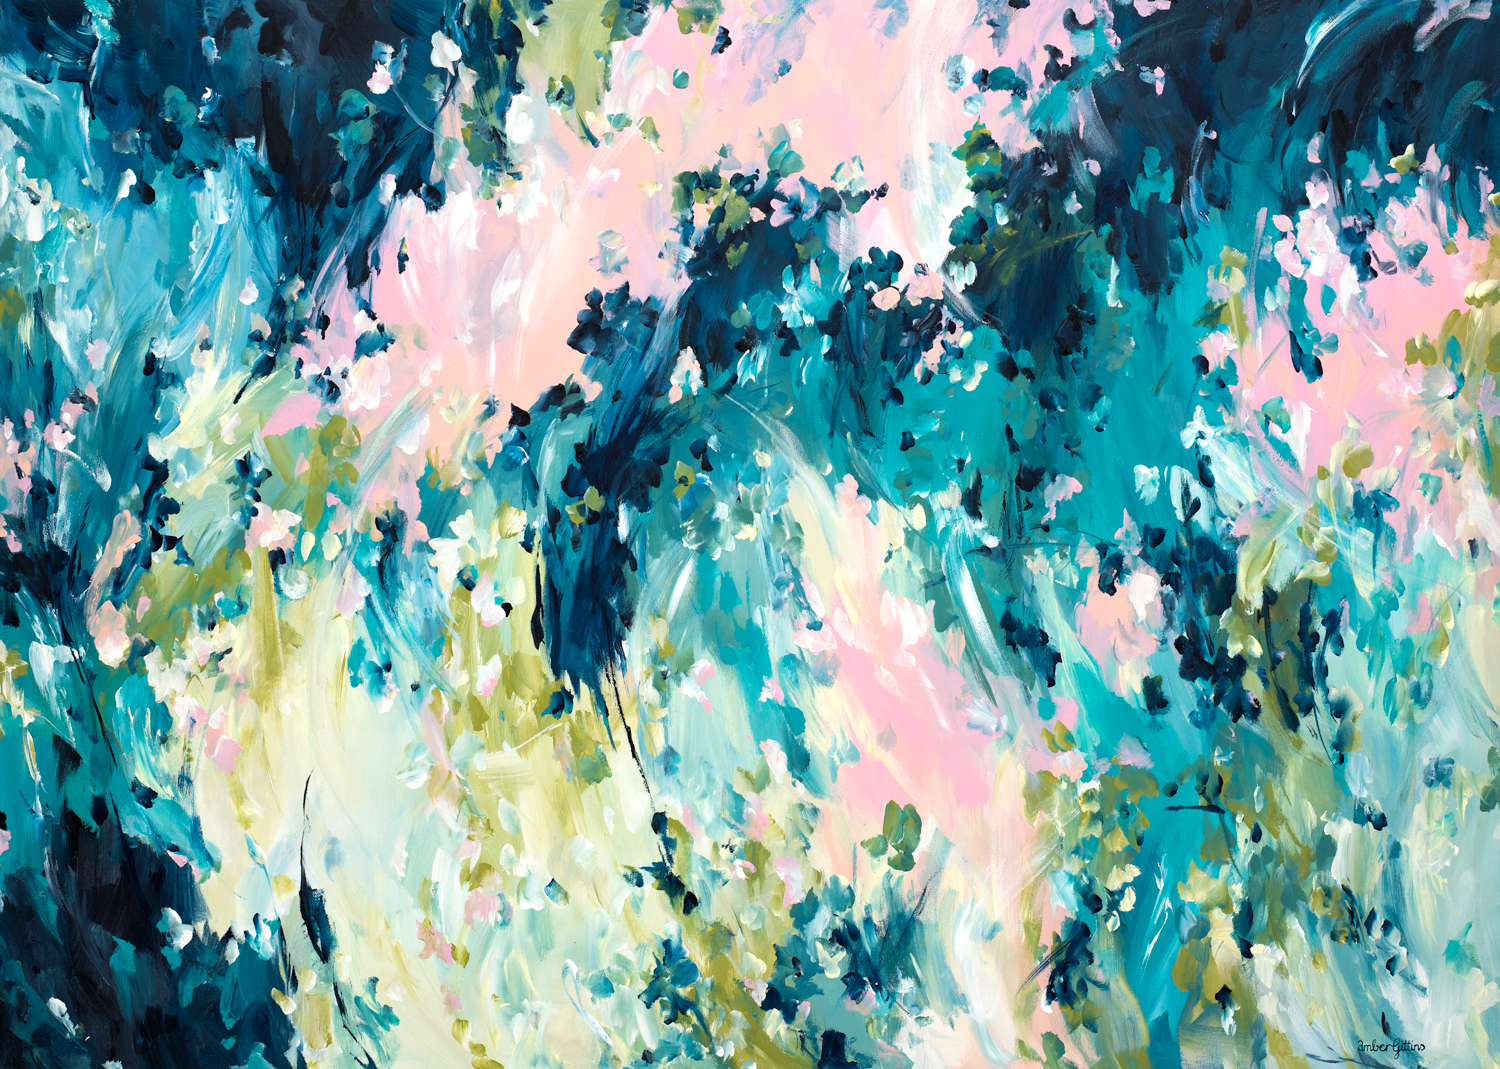 Endless-Passion-by-abstract-expressionist-artist-Amber-Gittins